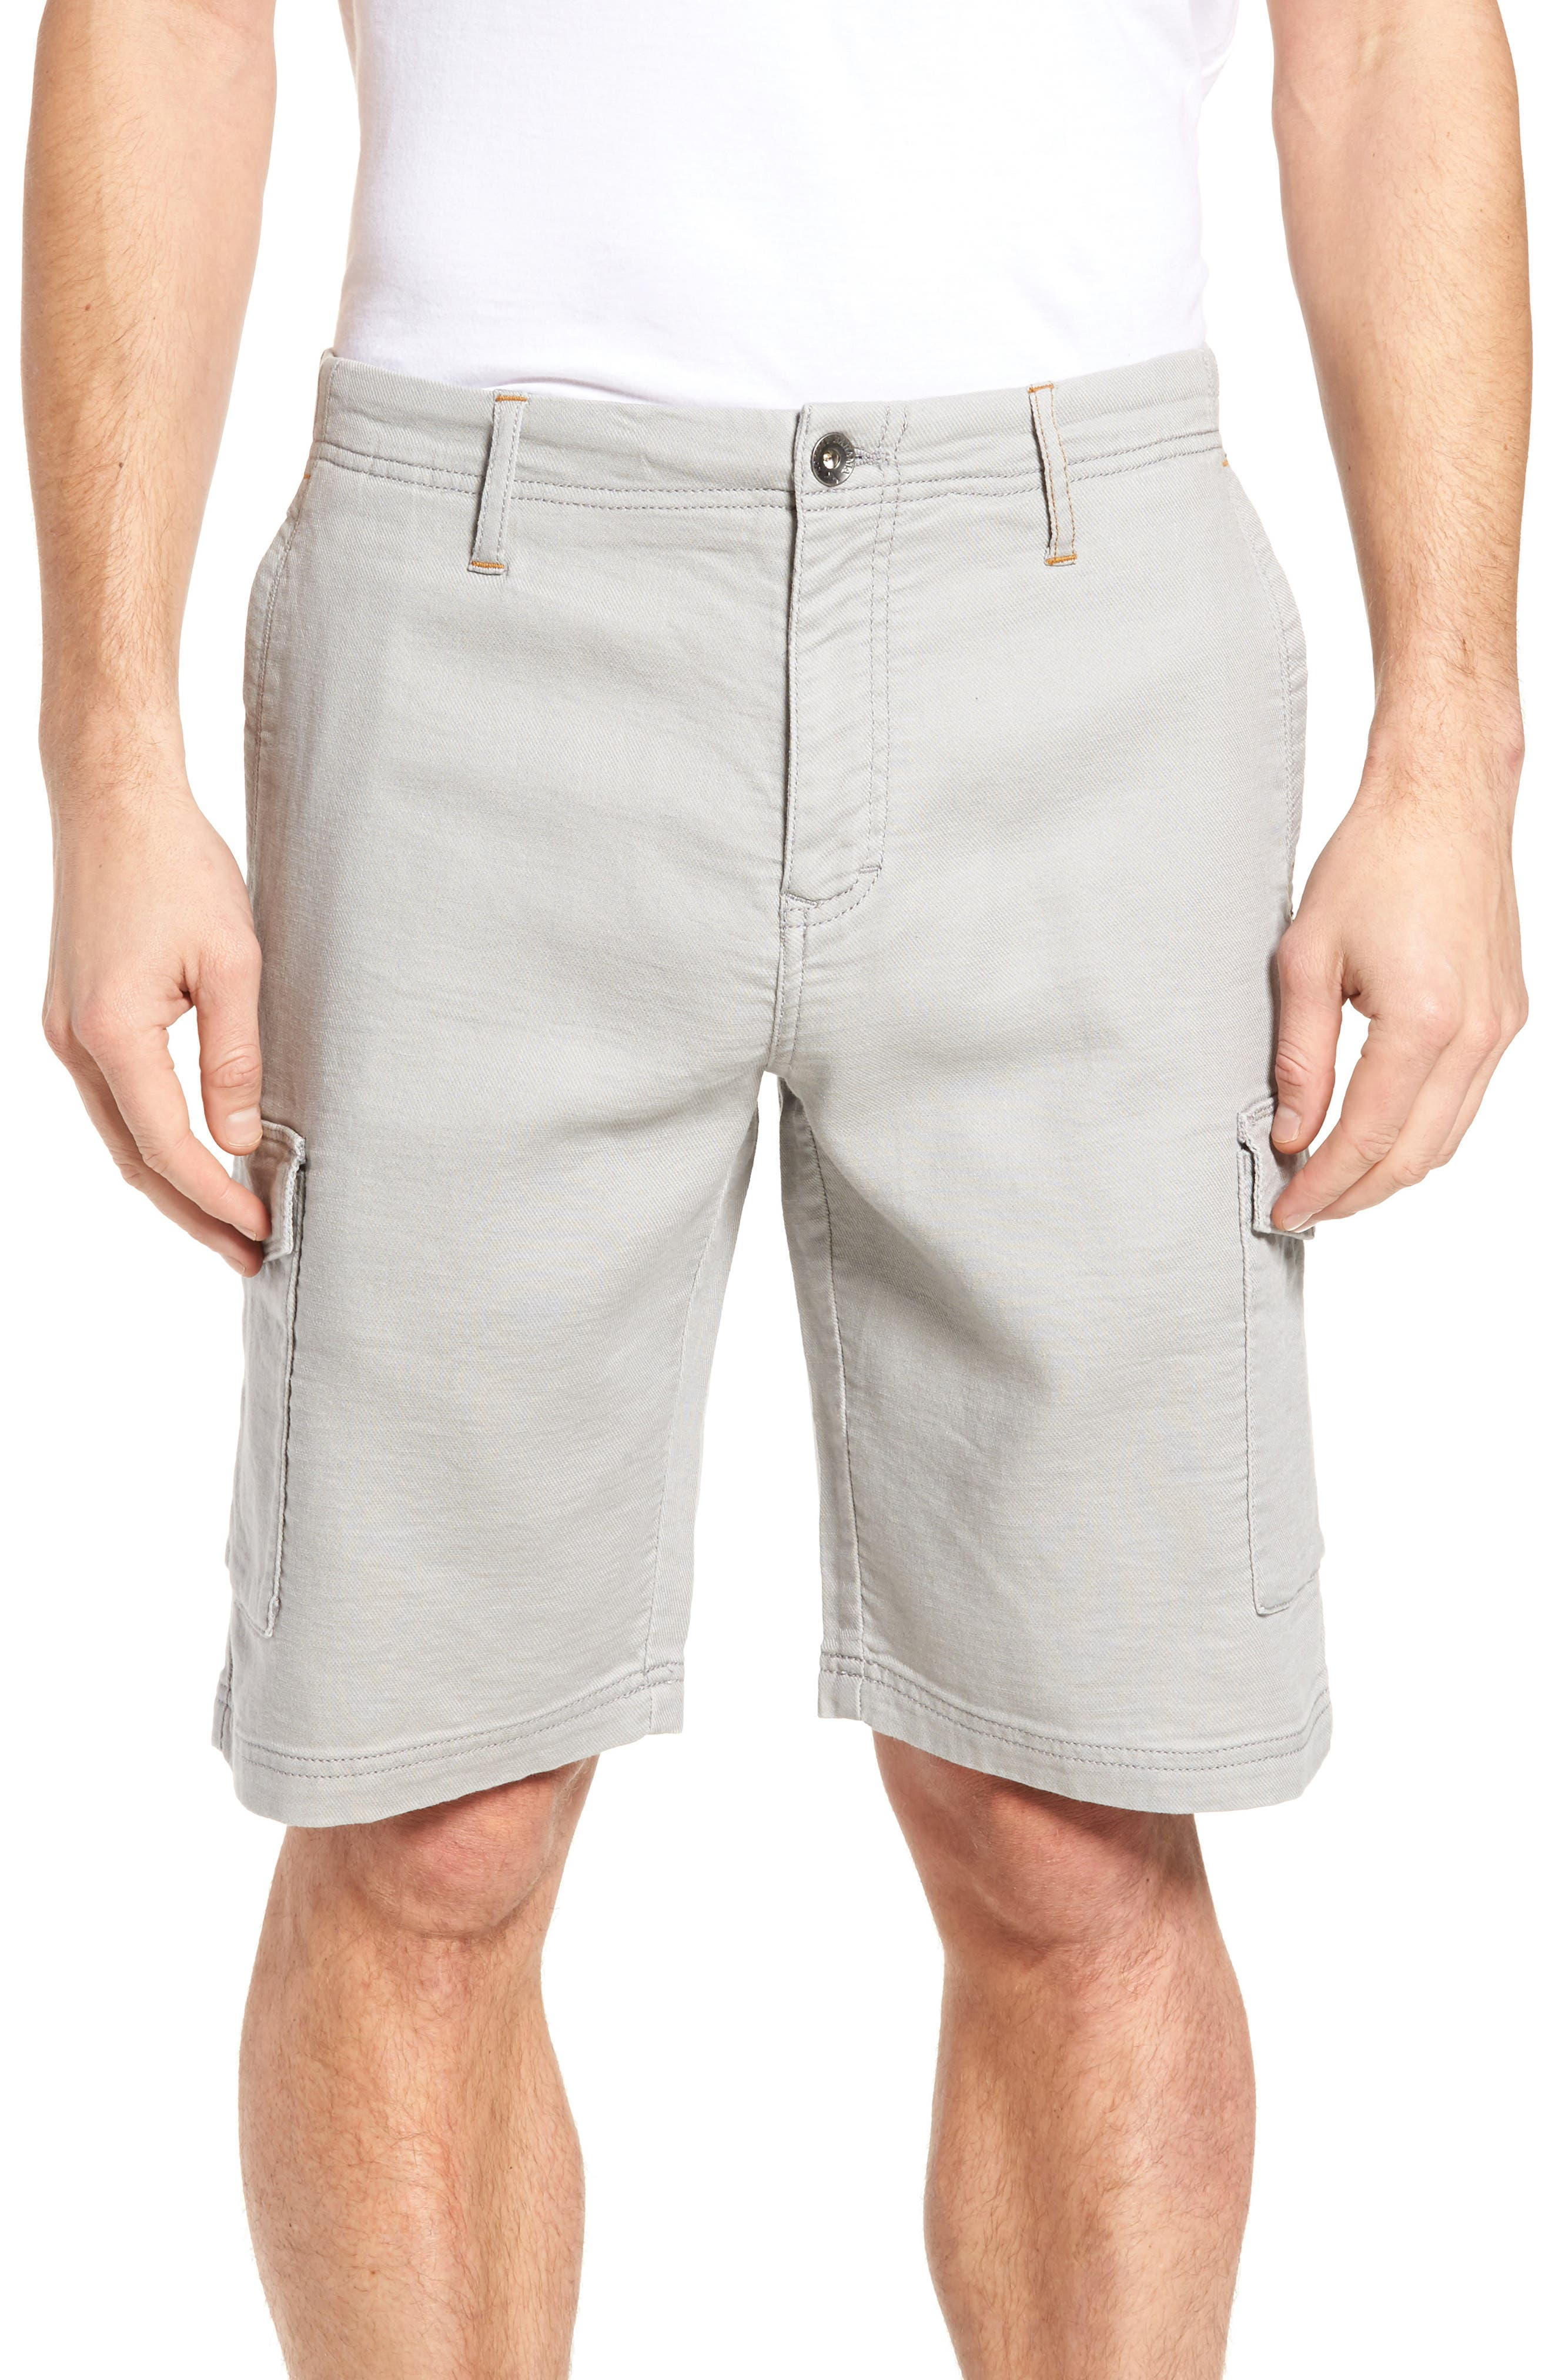 Edgewood Cargo Shorts,                         Main,                         color, Argent